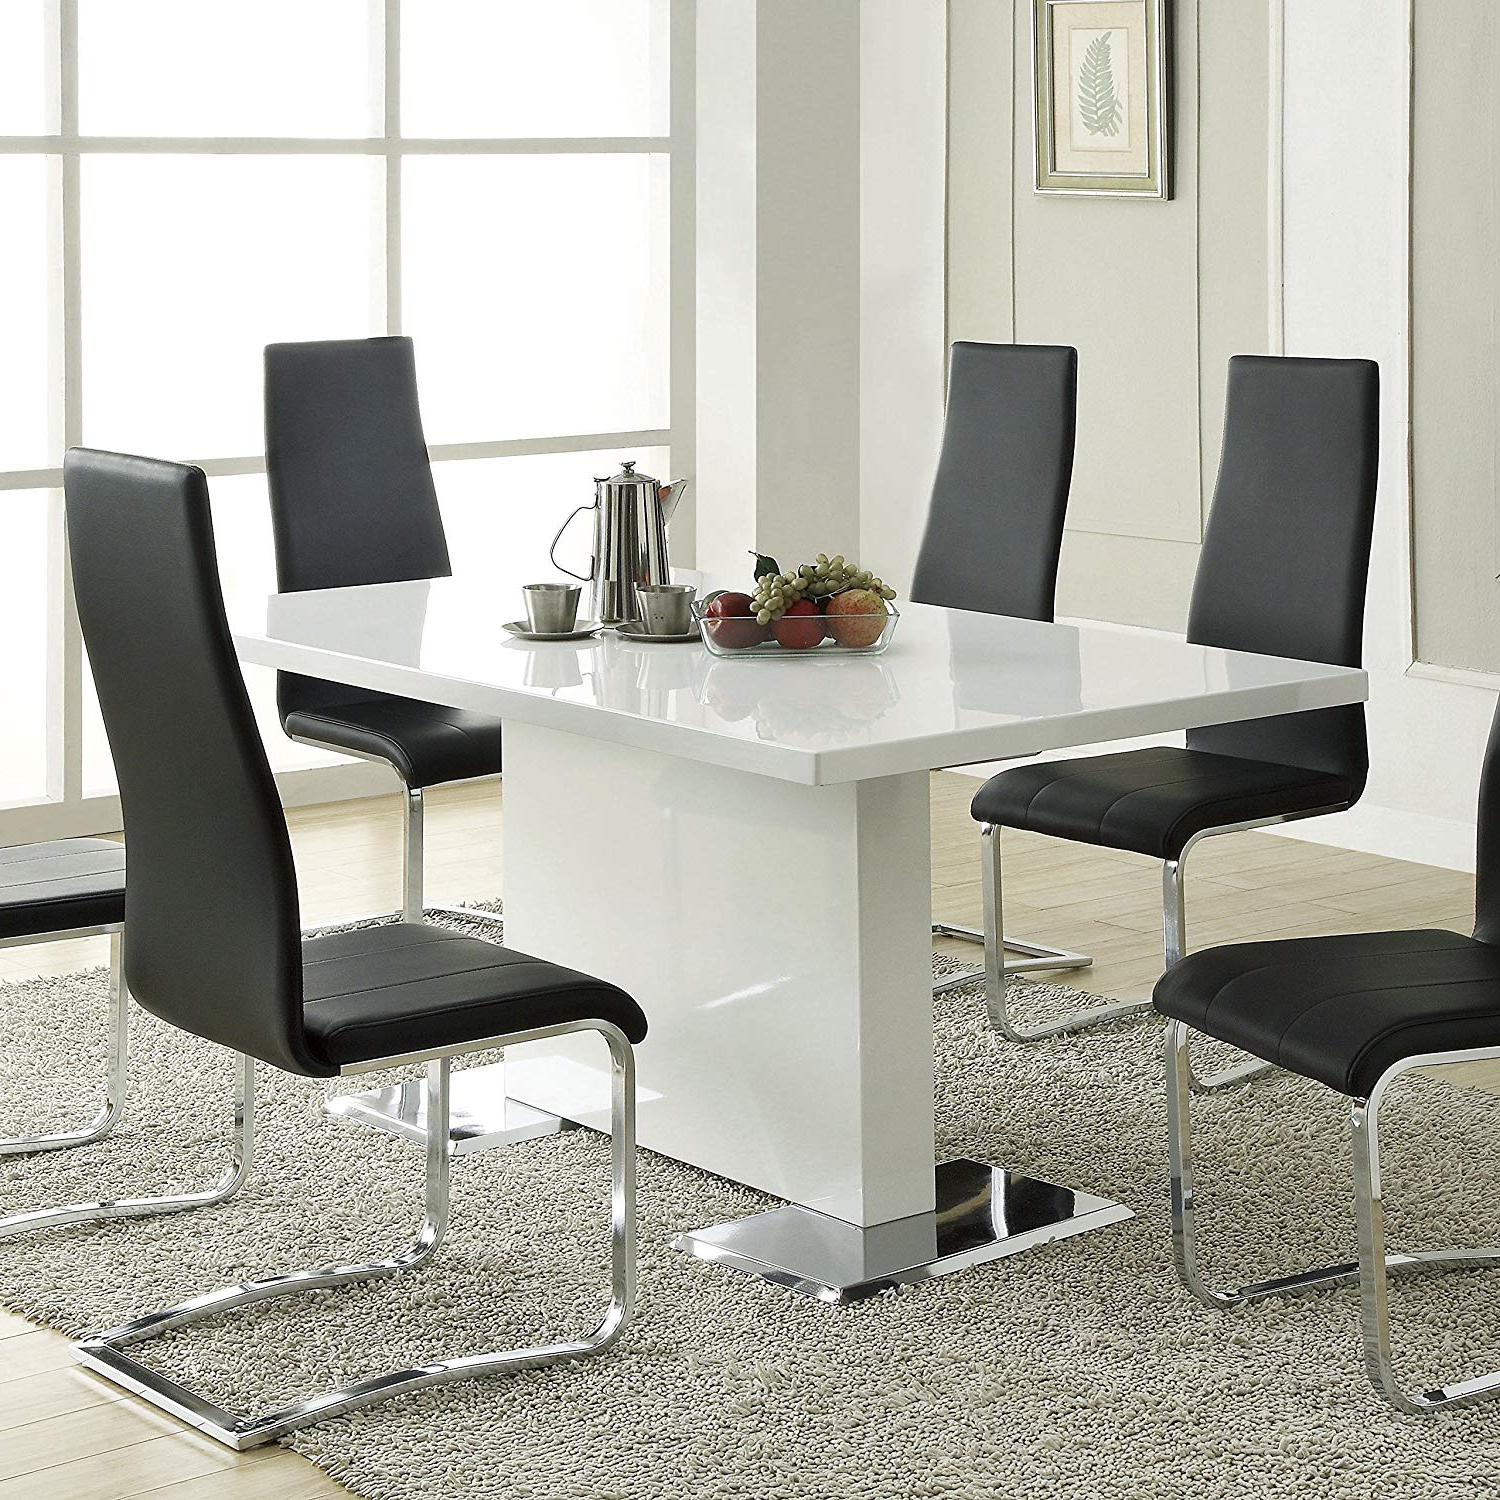 Most Recent Nameth Dining Table With Metal Base Glossy White With Regard To Modern Dining Tables (View 12 of 30)